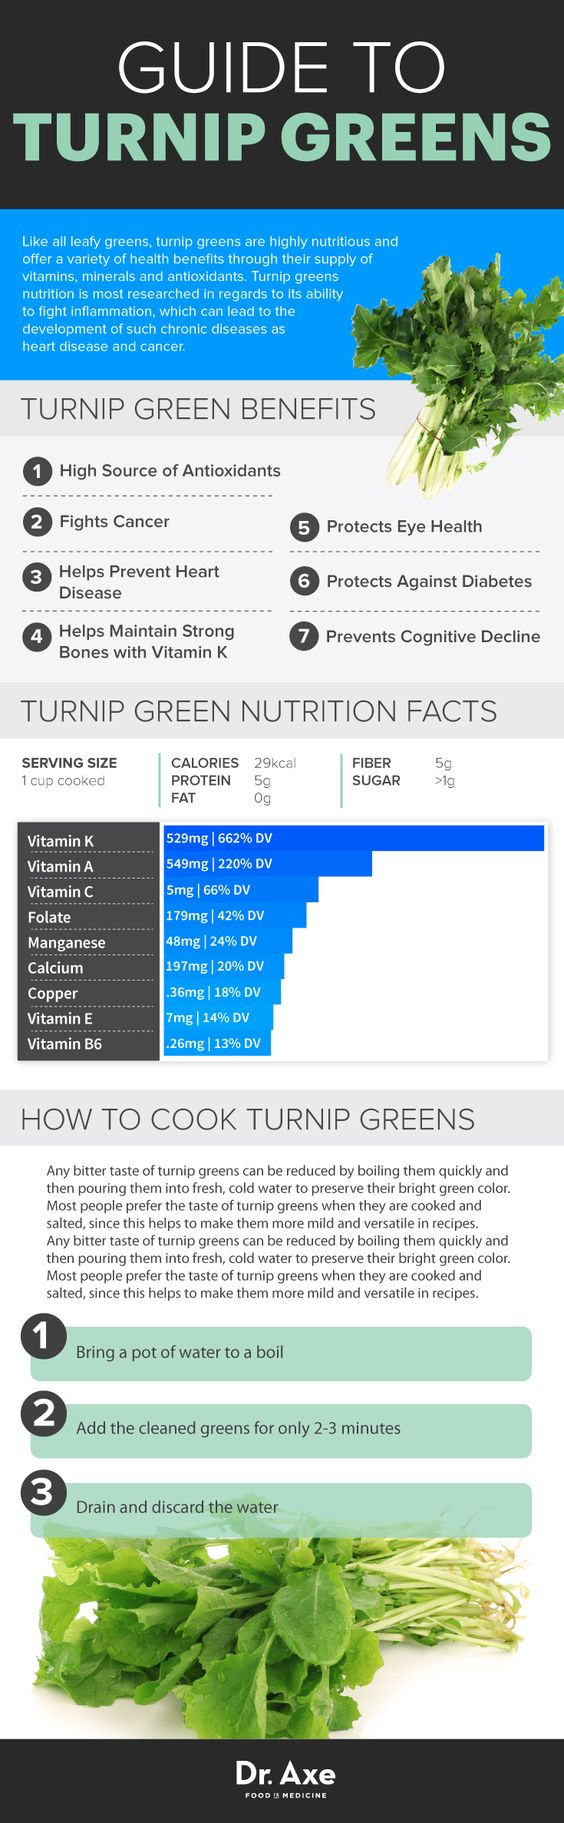 Dr. Axe - Guide to Turnip Greens: